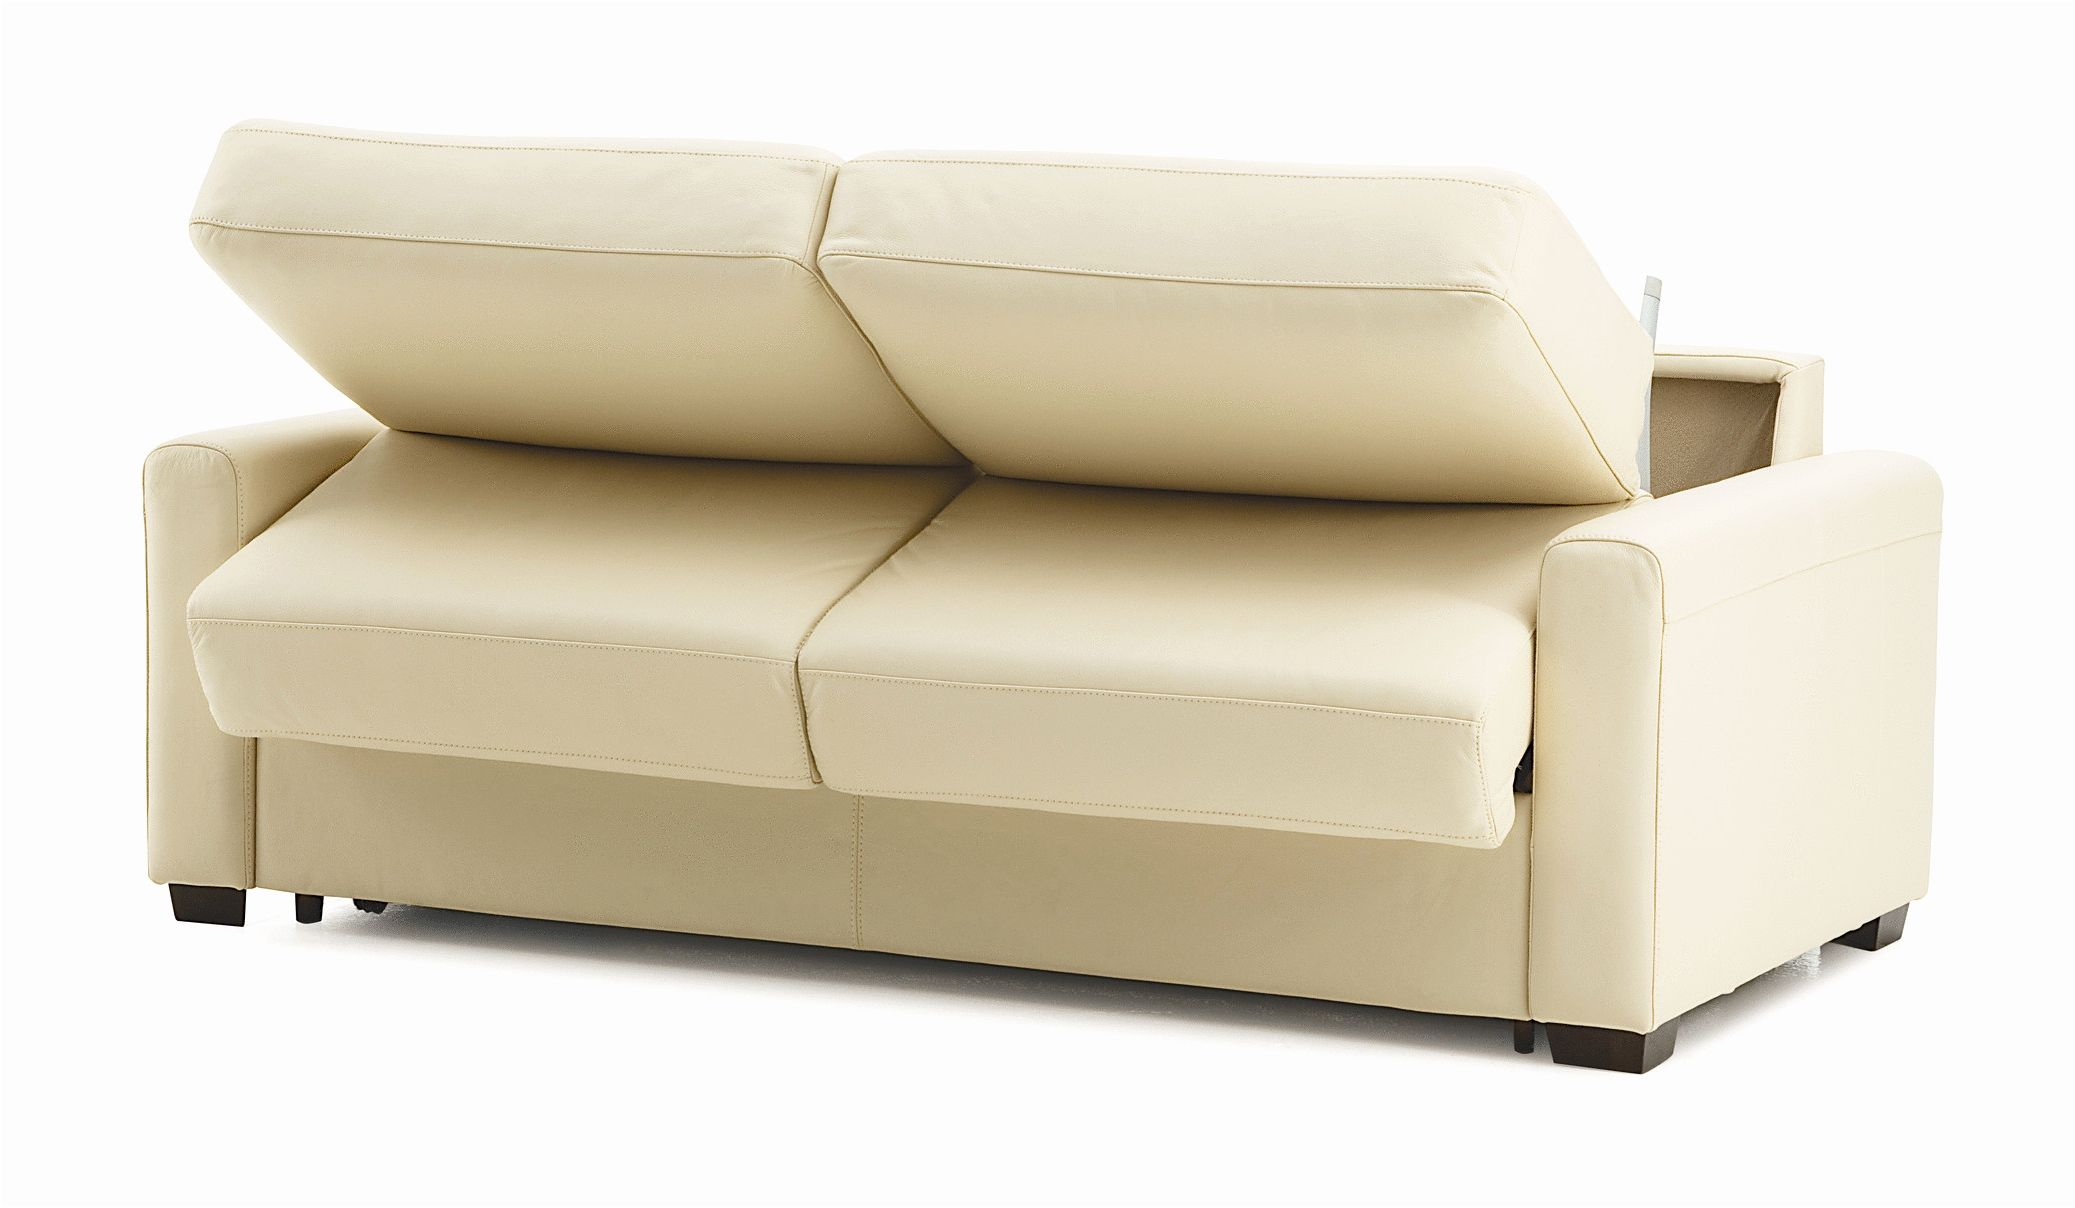 lovely small sofa chair design-Awesome Small sofa Chair Concept